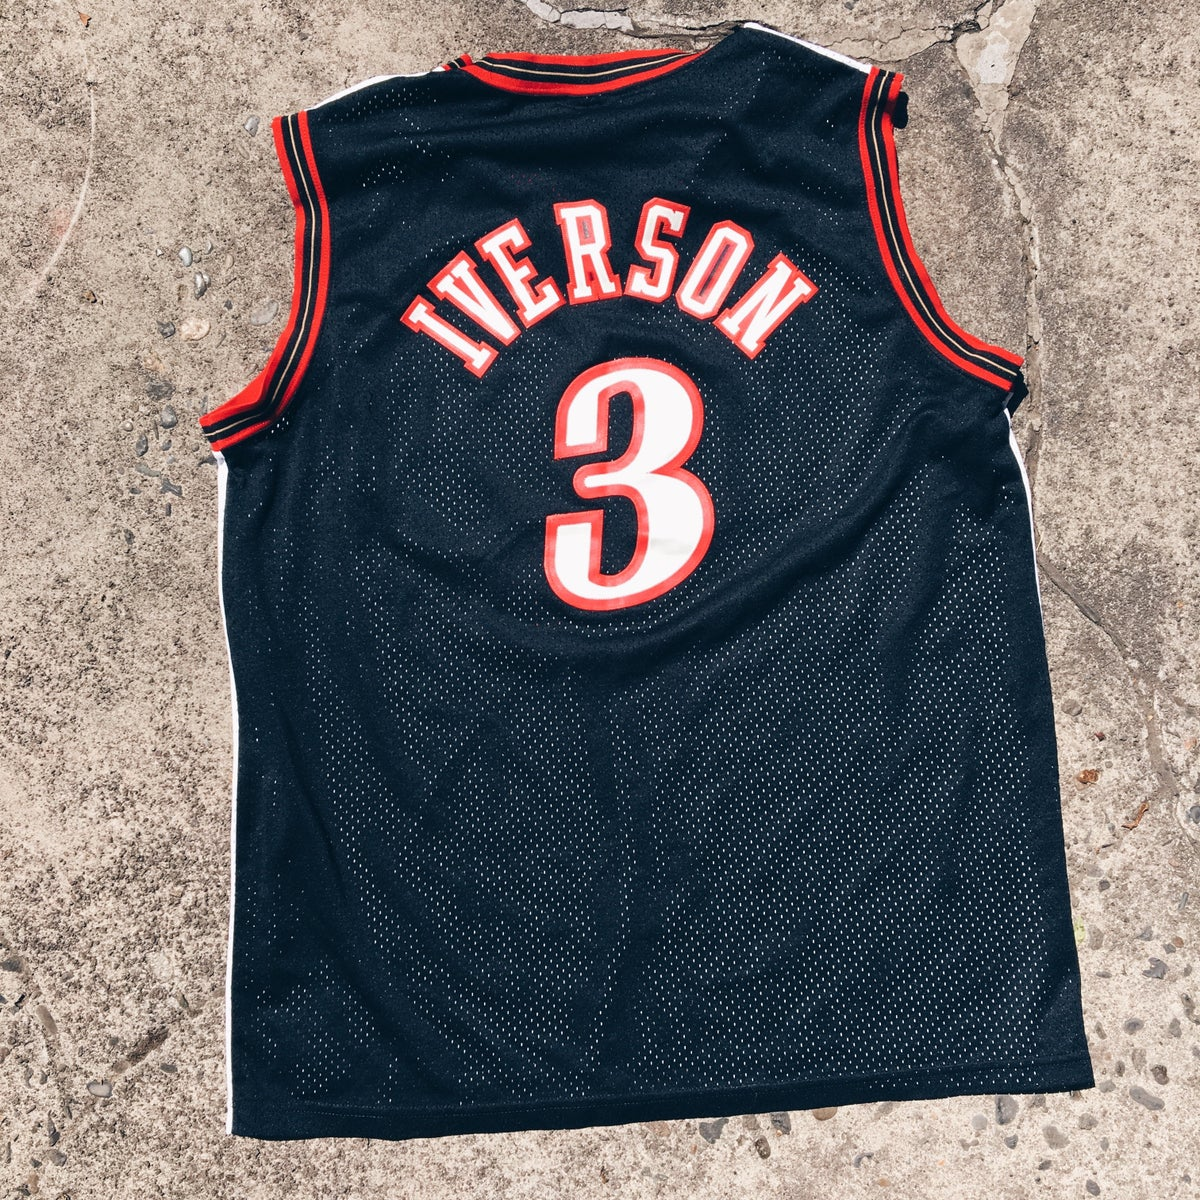 Image of Original Early 2000's Nike Allen Iverson Cut n Sew Home/Away Jersey.